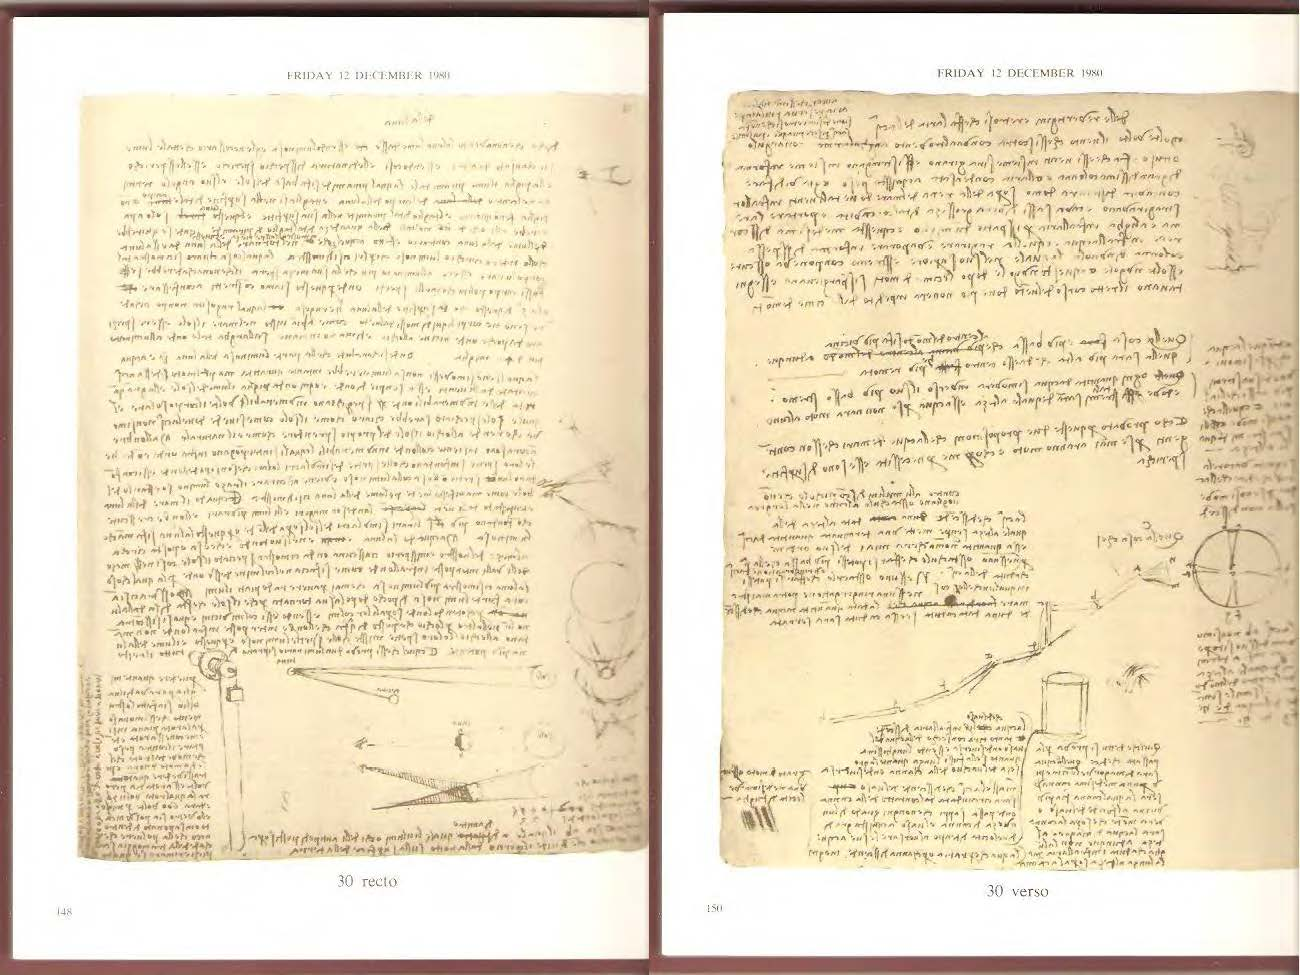 Codex_Leicester_Page_30_Image_0001.jpg